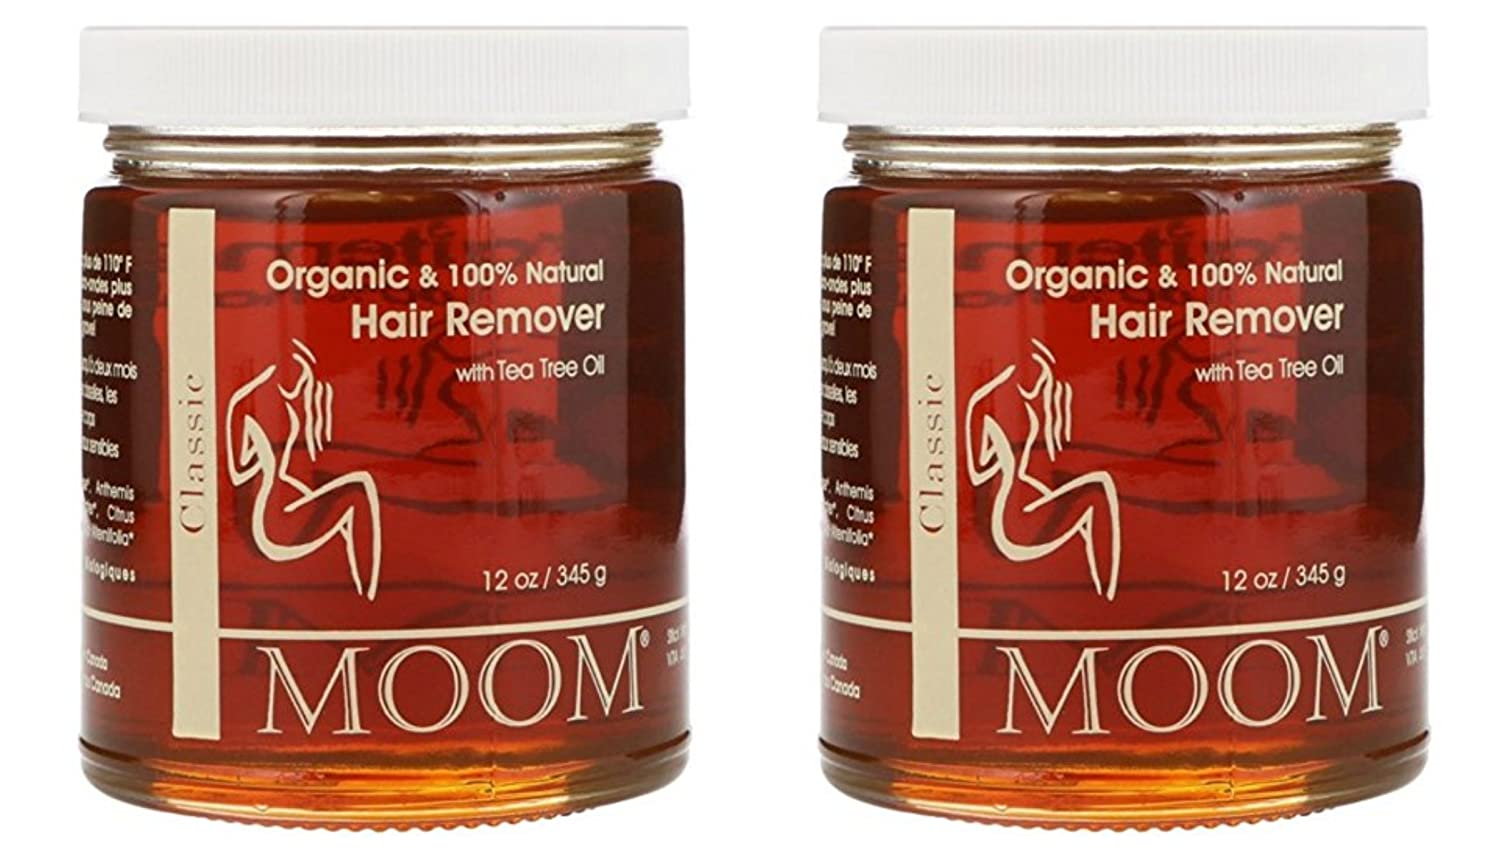 Moom Organic Hair Removal With Tea Tree Refill Jar – 12 oz Pack of 2